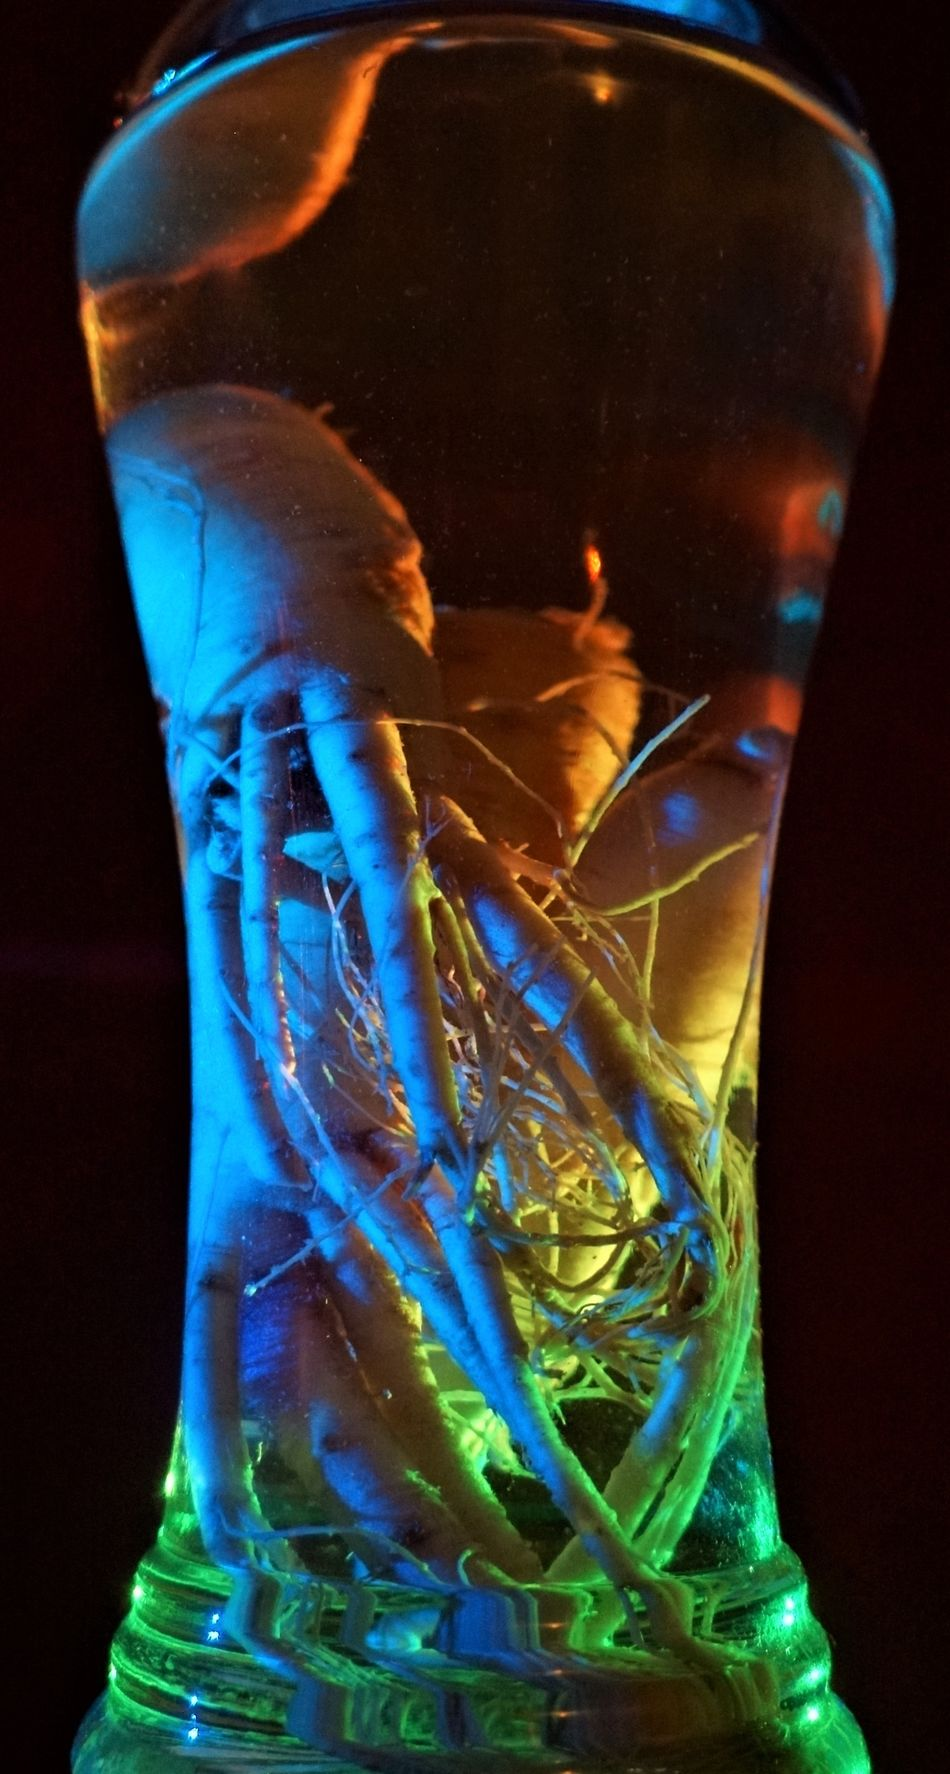 Bw Colors Drinking Glass Energy Experimental Photography Food And Drink Ginseng Light And Shadow Experimental